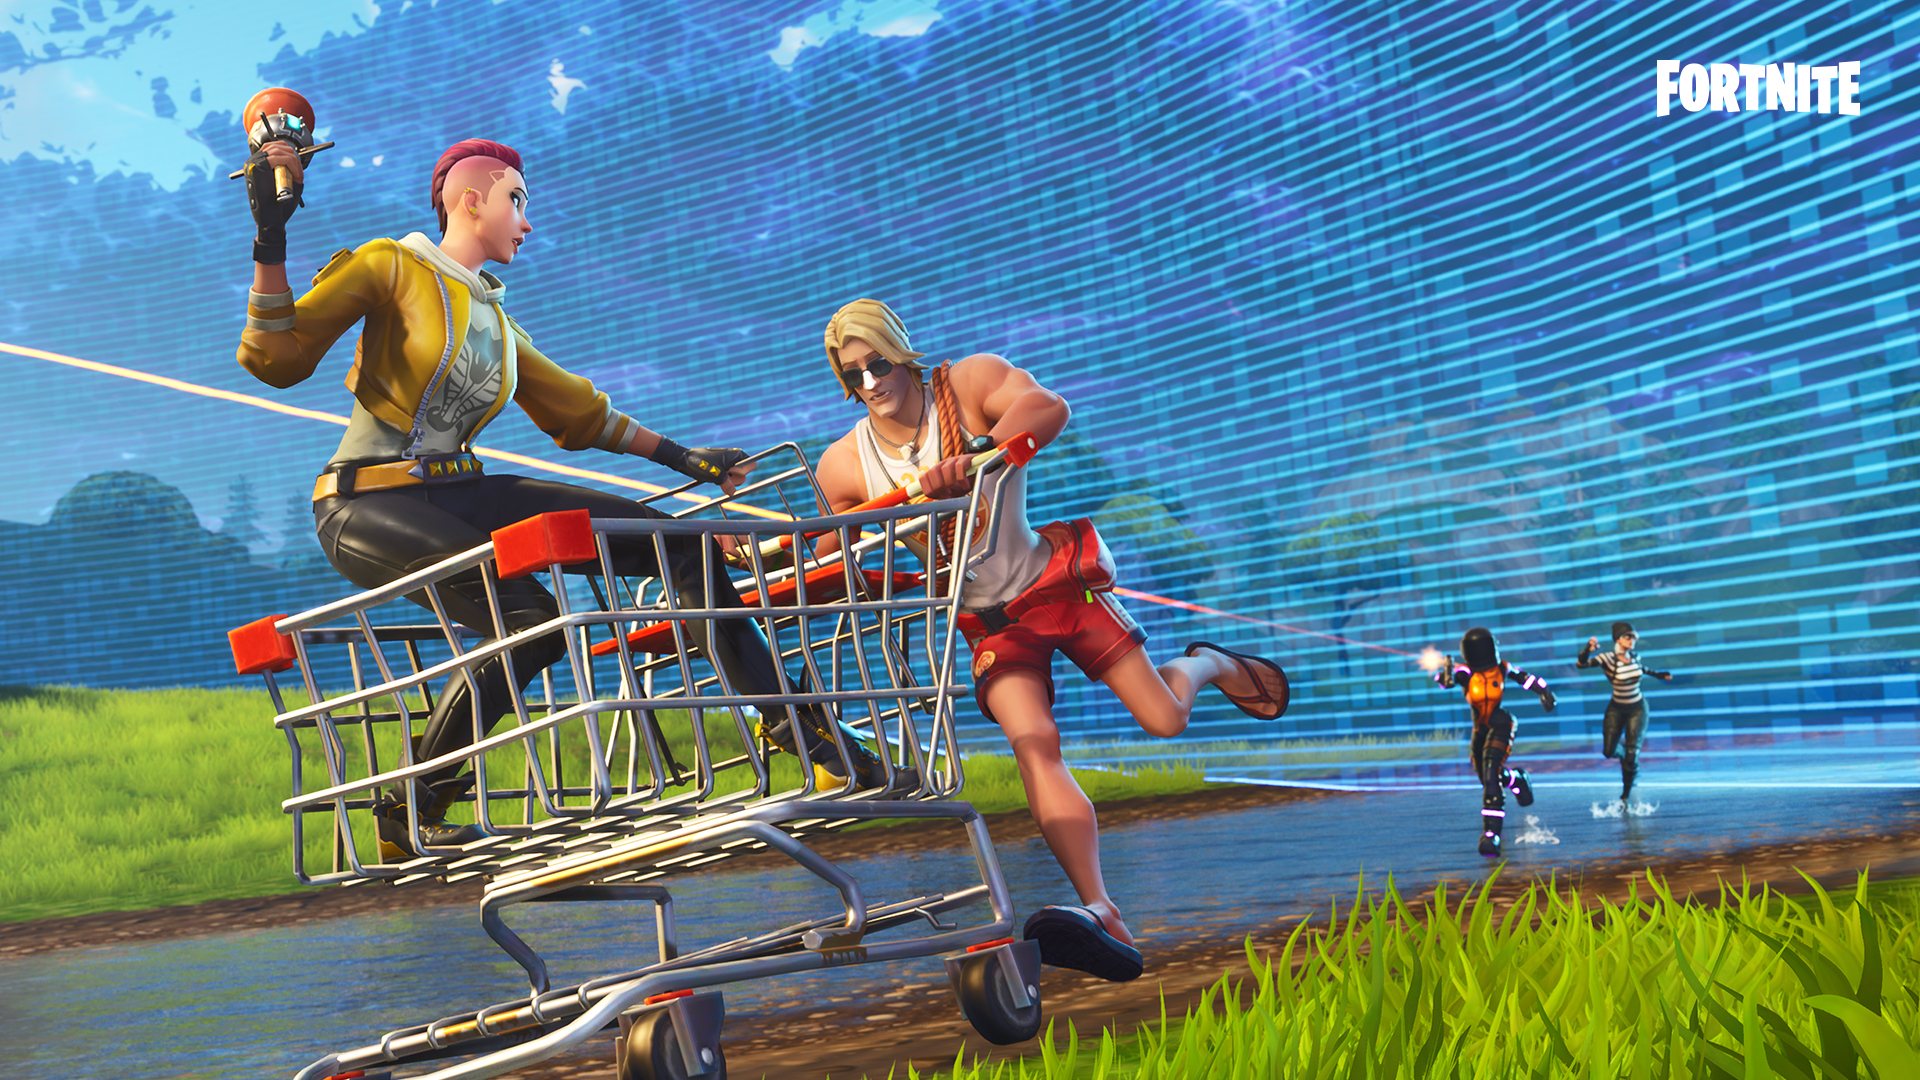 Where are the flaming hoops locations in Fortnite?